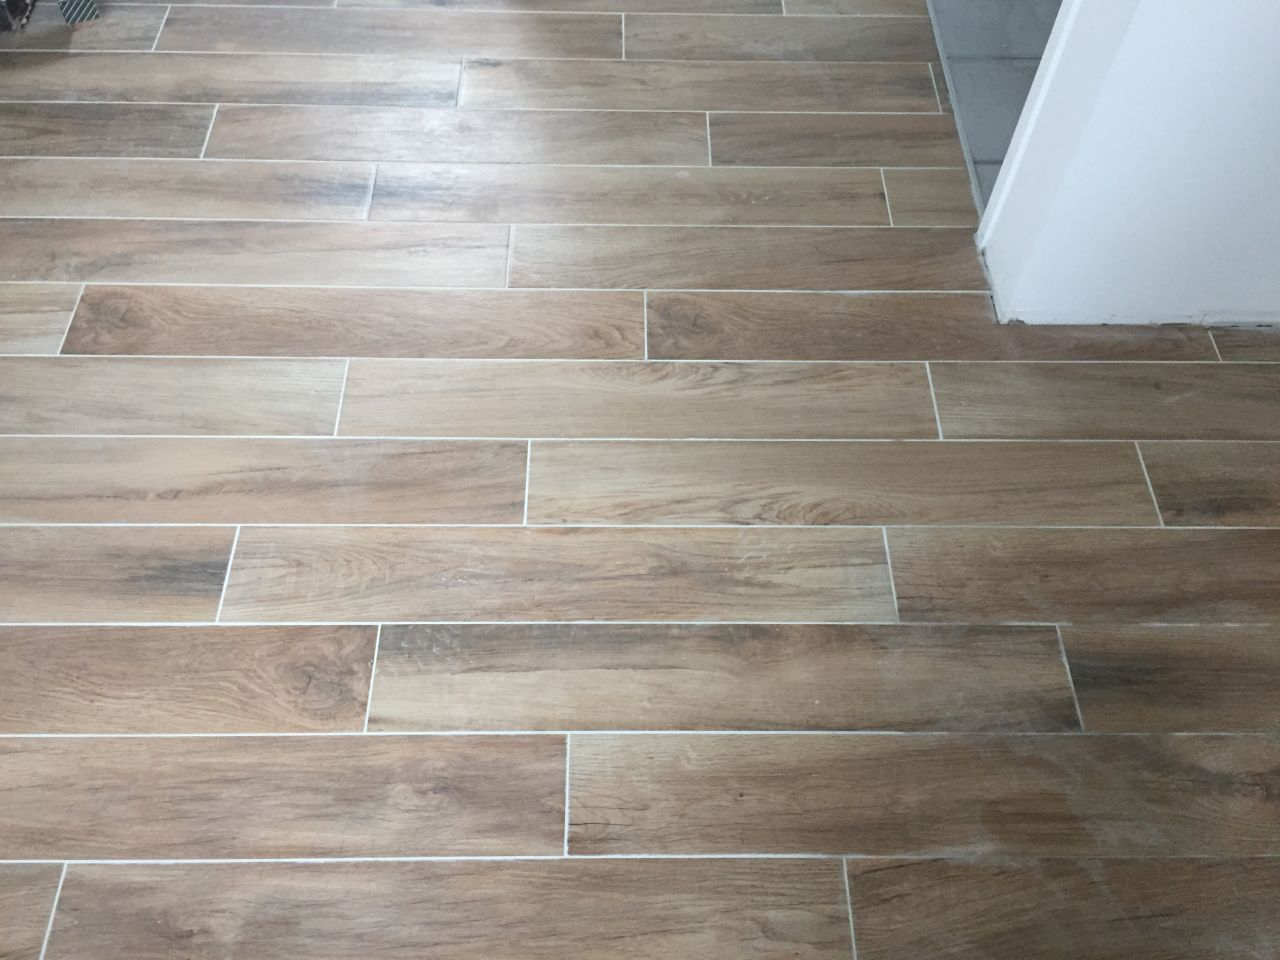 Photo maison carrelage imitation parquet for Carrelage maison